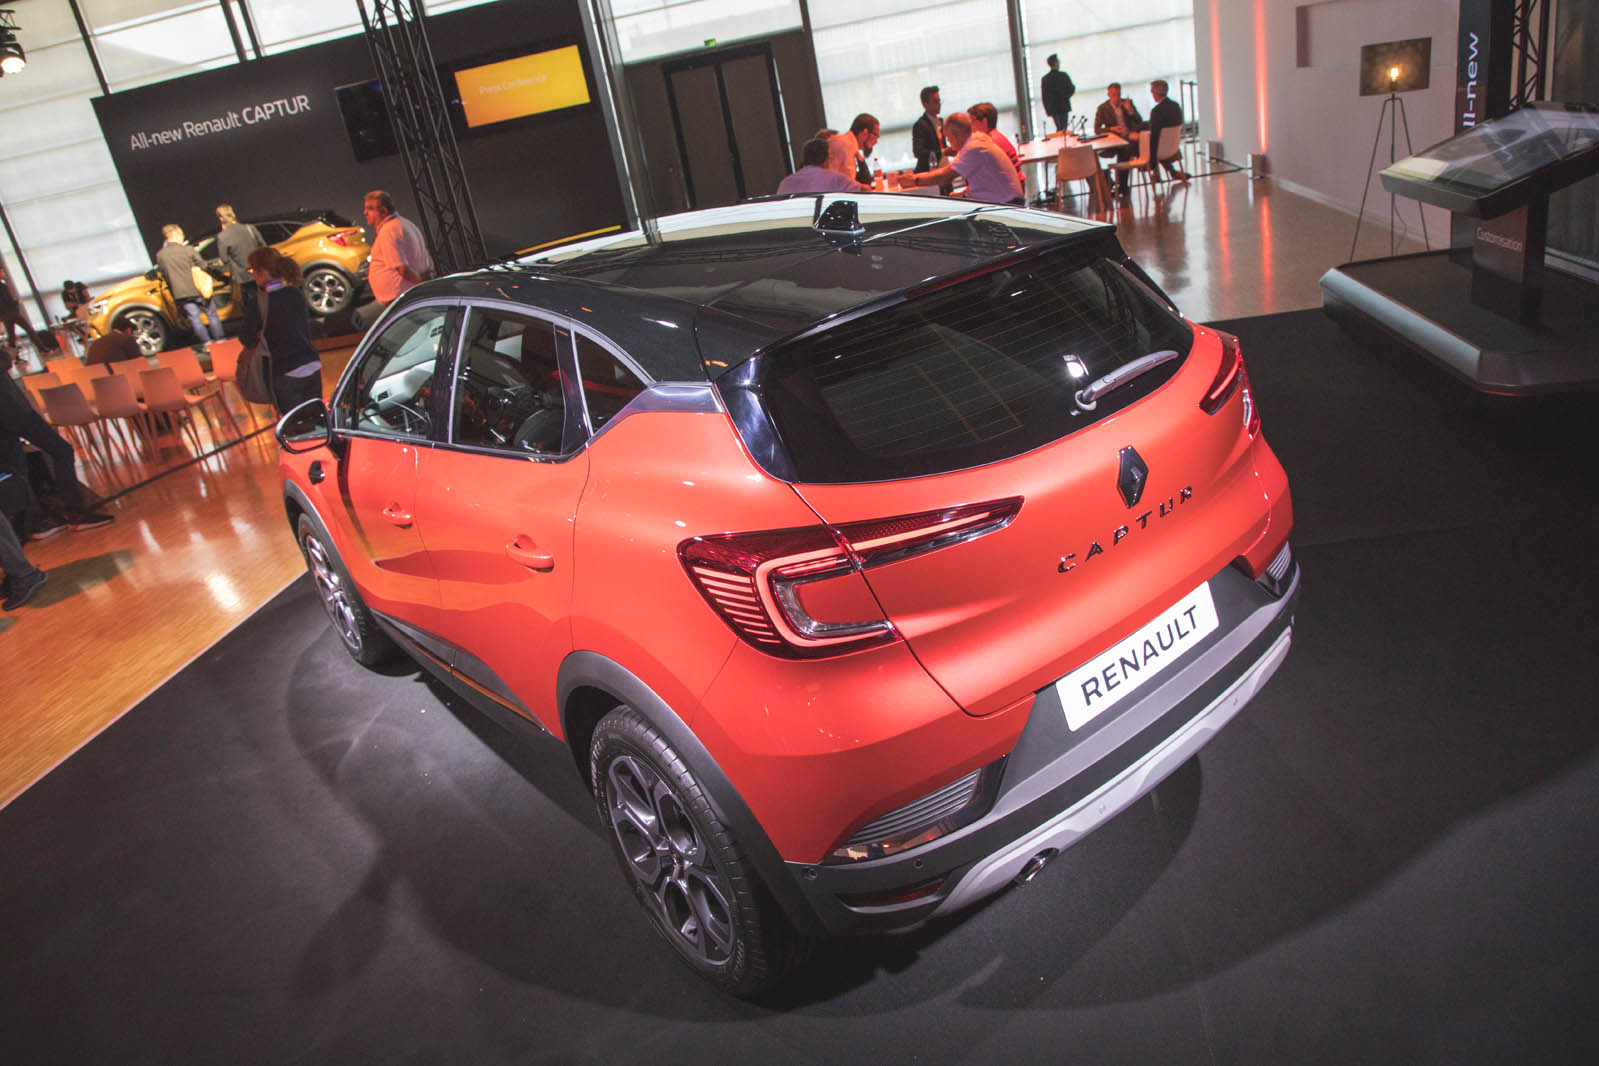 new renault captur uk prices and specs announced for 2020 crossover autocar